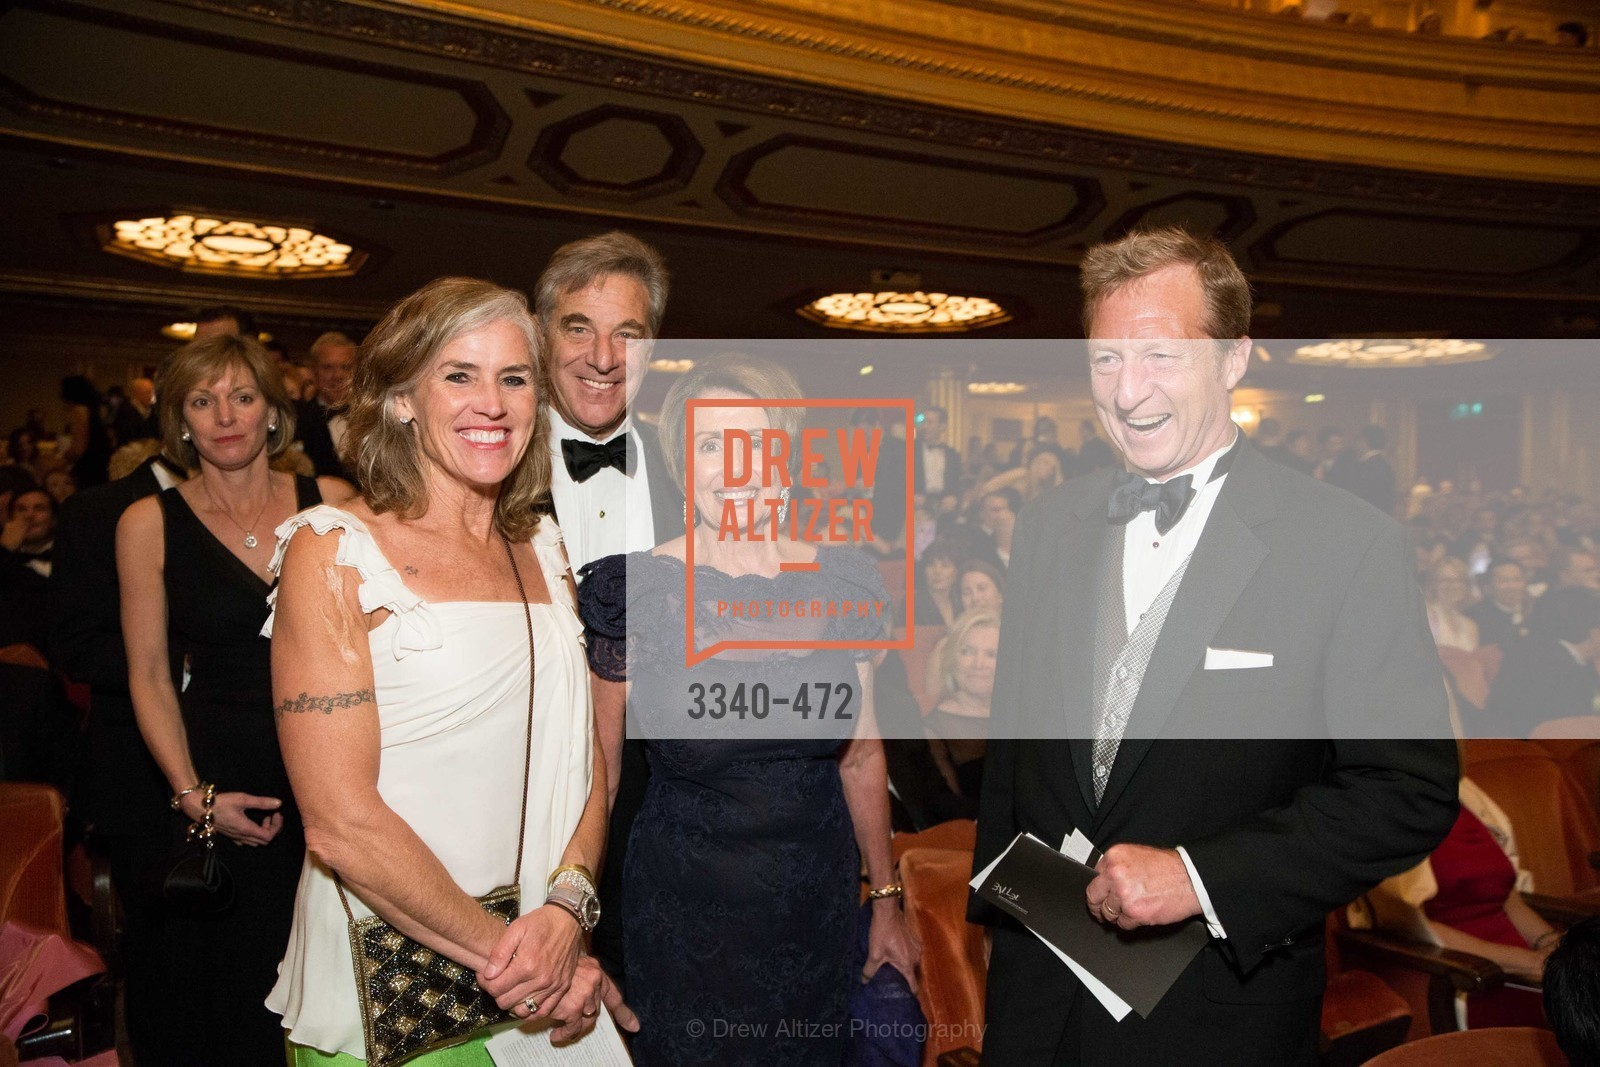 Kat Steyer, Paul Pelosi, Nancy Pelosi, Tom Steyer, SAN FRANCISCO BALLET Opening Night Gala: PHENOMENAL - Intermission & Dinner, US. SF City Hall, January 22nd, 2014,Drew Altizer, Drew Altizer Photography, full-service agency, private events, San Francisco photographer, photographer california